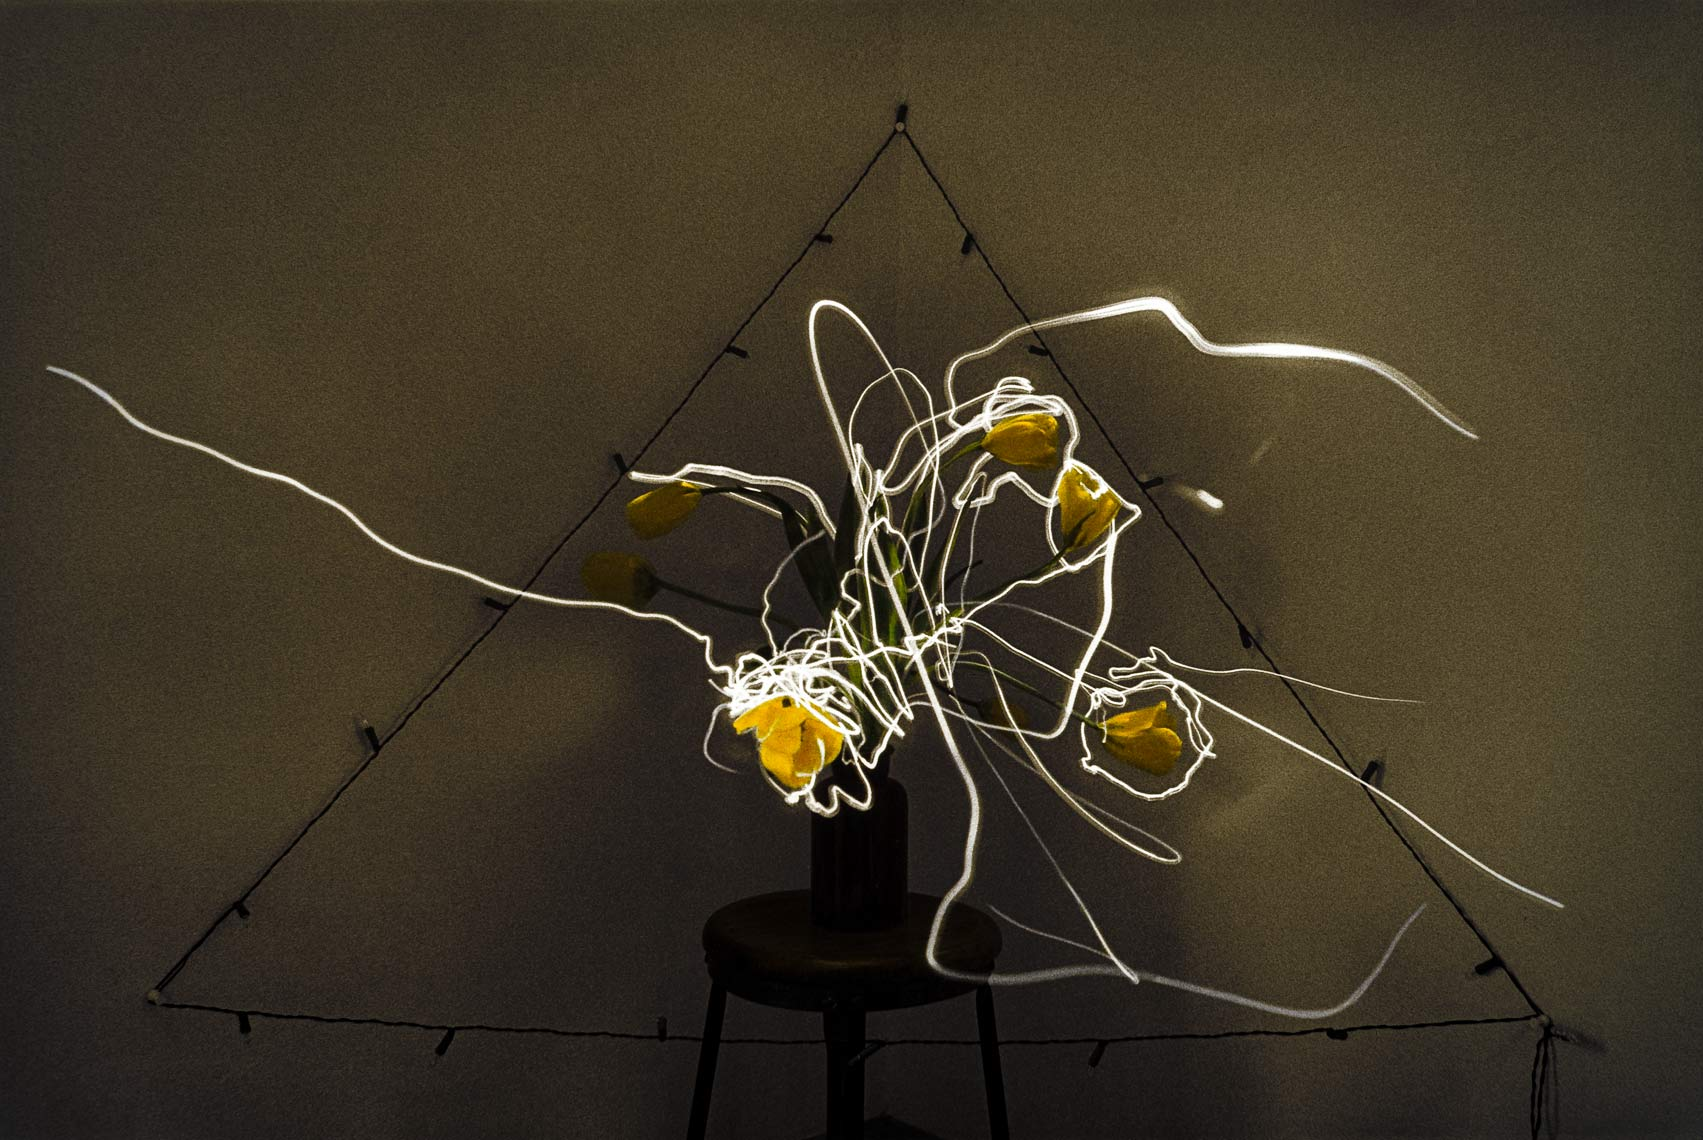 David Lebe; Yellow Tulips, 1982, still life, light drawing, hand colored photograph